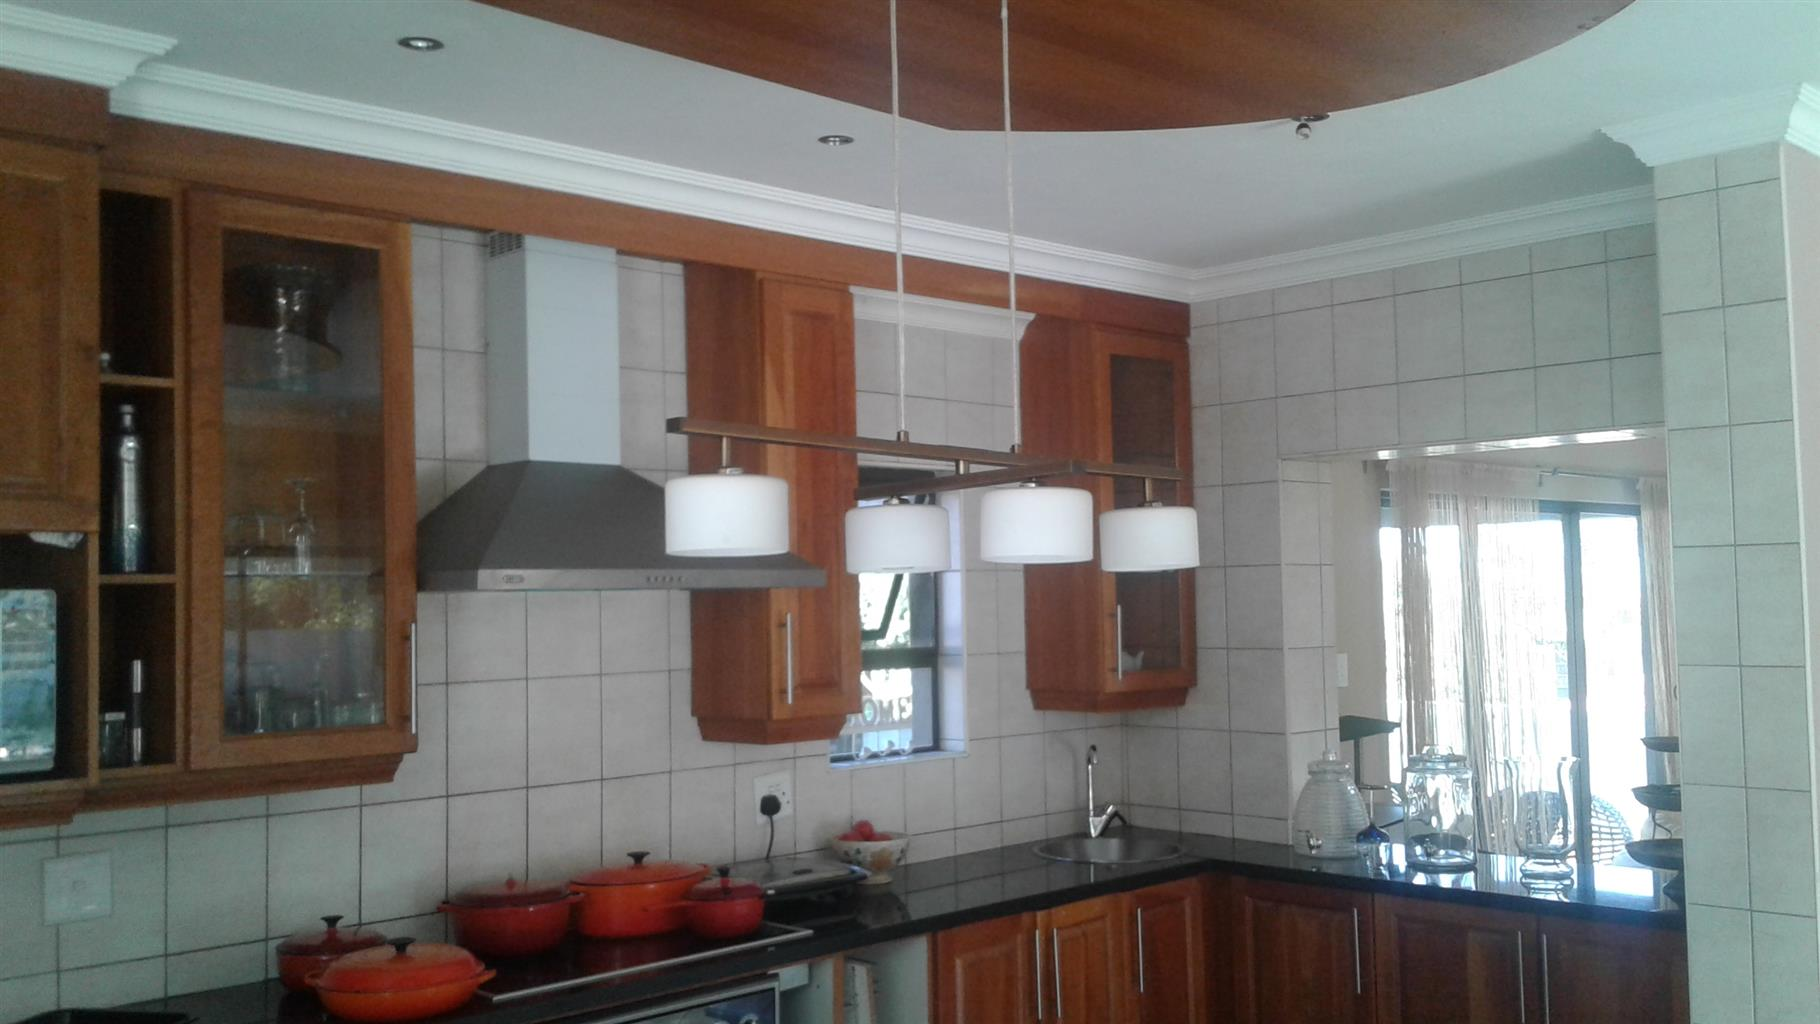 TO HAVE 5 BEDROOMS FAMILY HOUSE  FOR SALE HAARTEBEESPORT BIRDWOOD ESTATE IFAFI R2 250 000.00 CALL SOPHY FOR MORE INFO 0760813571